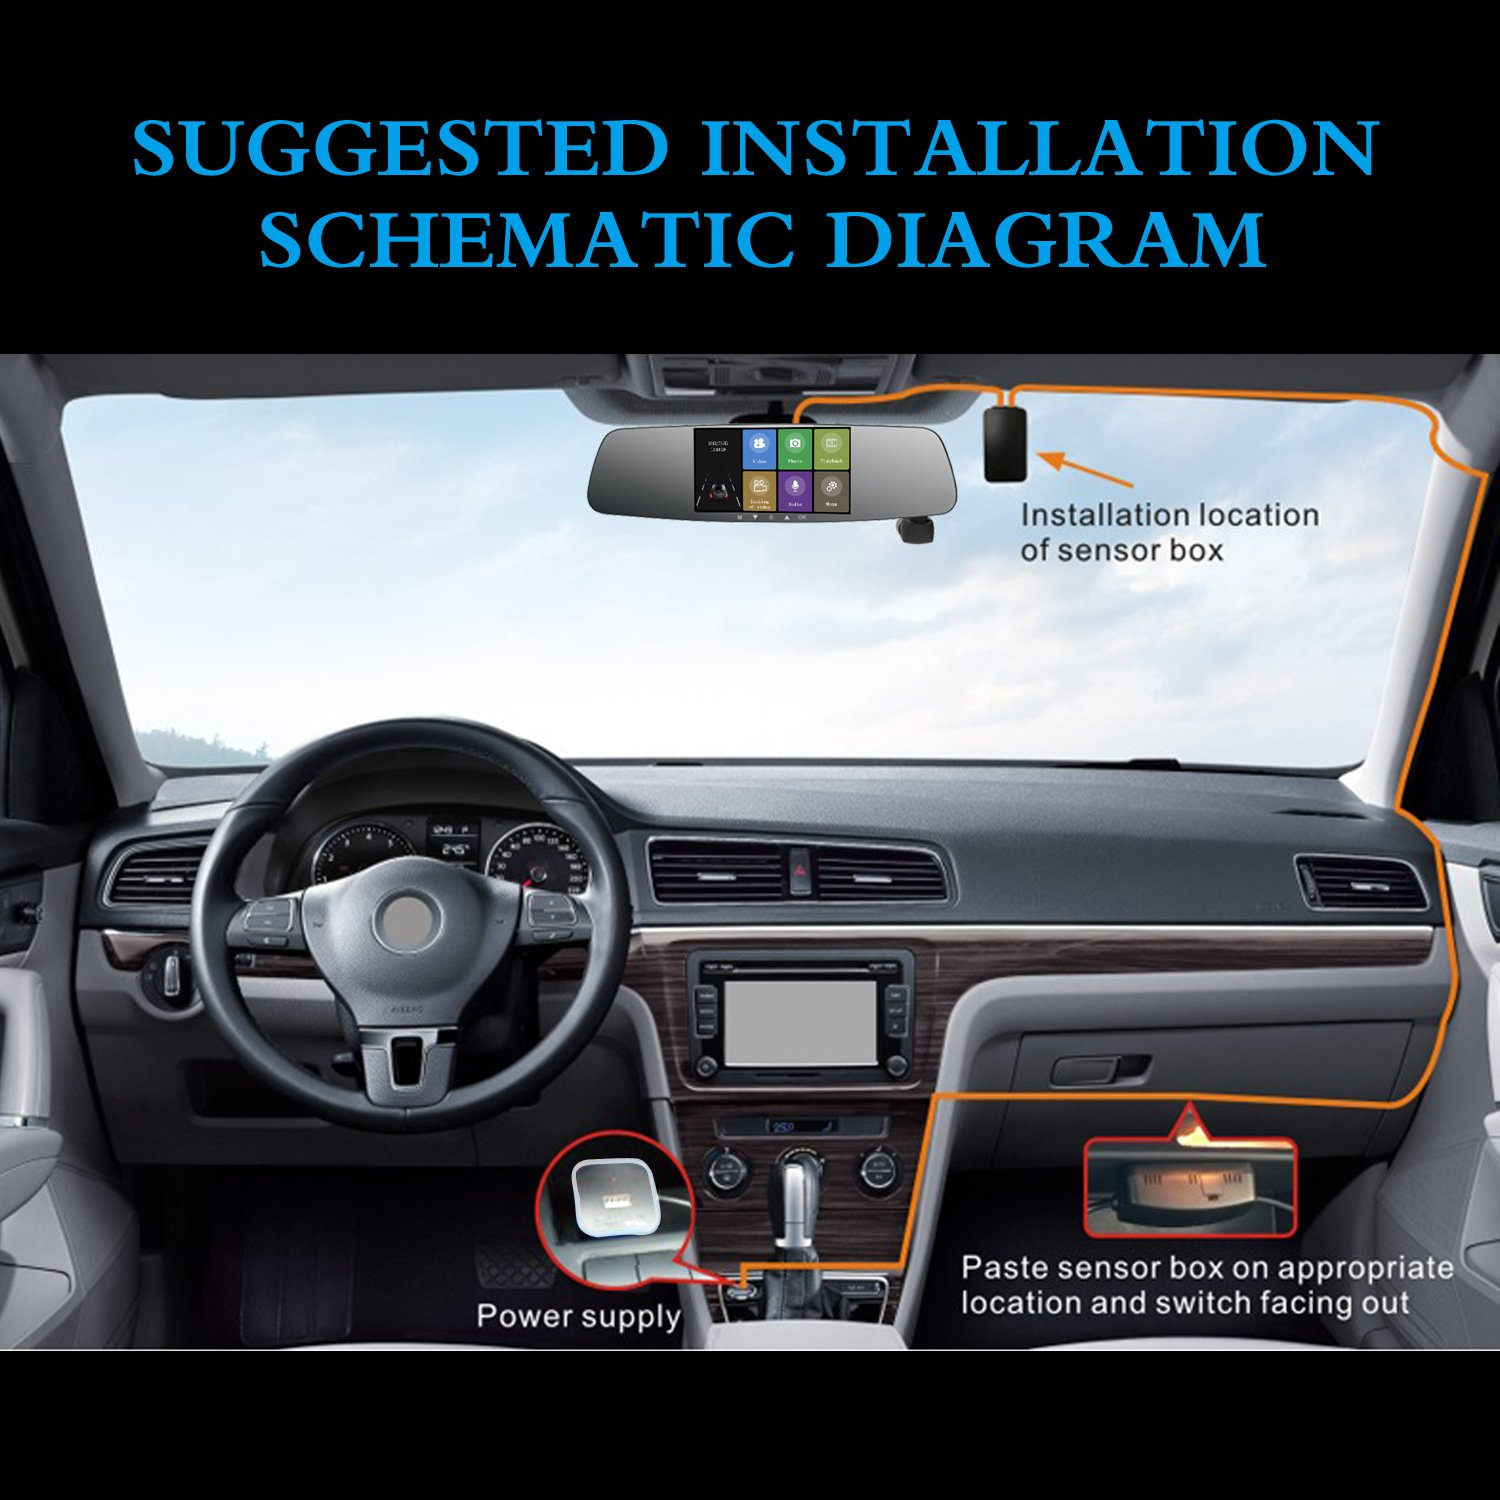 Spedal Car Dash Cam 1080p Hd 50 Touch Screen Dashboard Plcm7200 Wiring Diagram Camera 360automatic Rotation With Parking Monitor Loop Recording